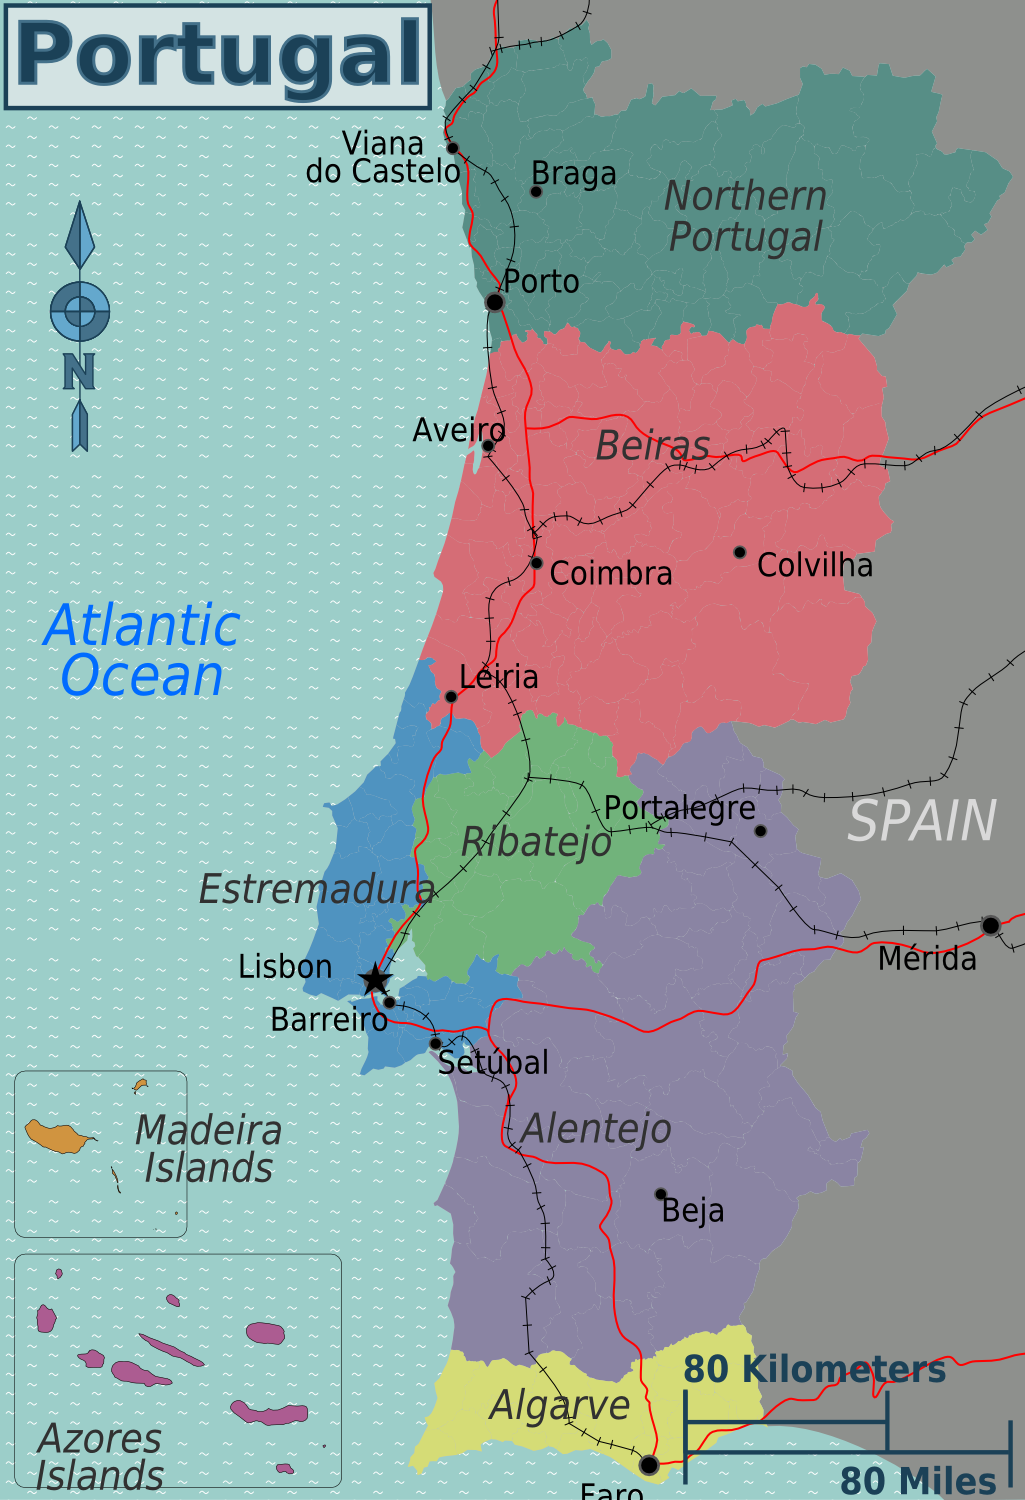 FilePortugal Regions Map Draftpng Wikimedia Commons - Portugal map 1500